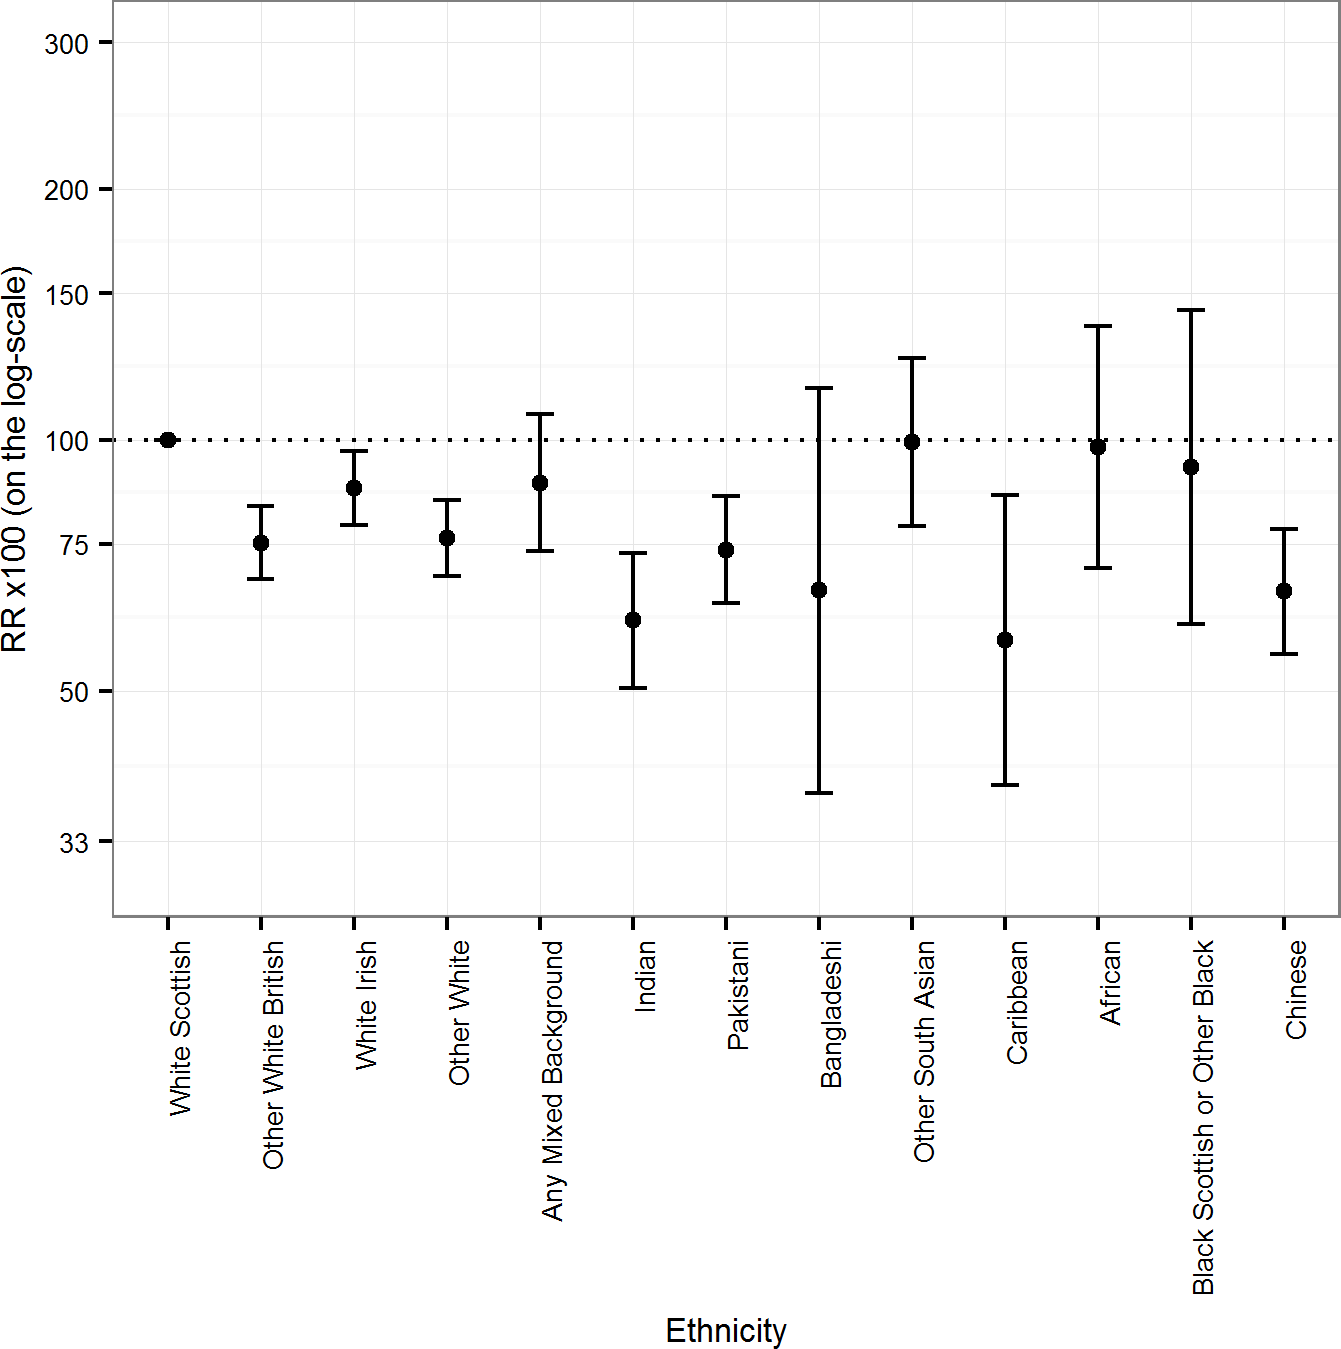 Age-adjusted rate ratios (RRs) (bars show 95% CIs) for all-cause mortality by ethnicity in females.